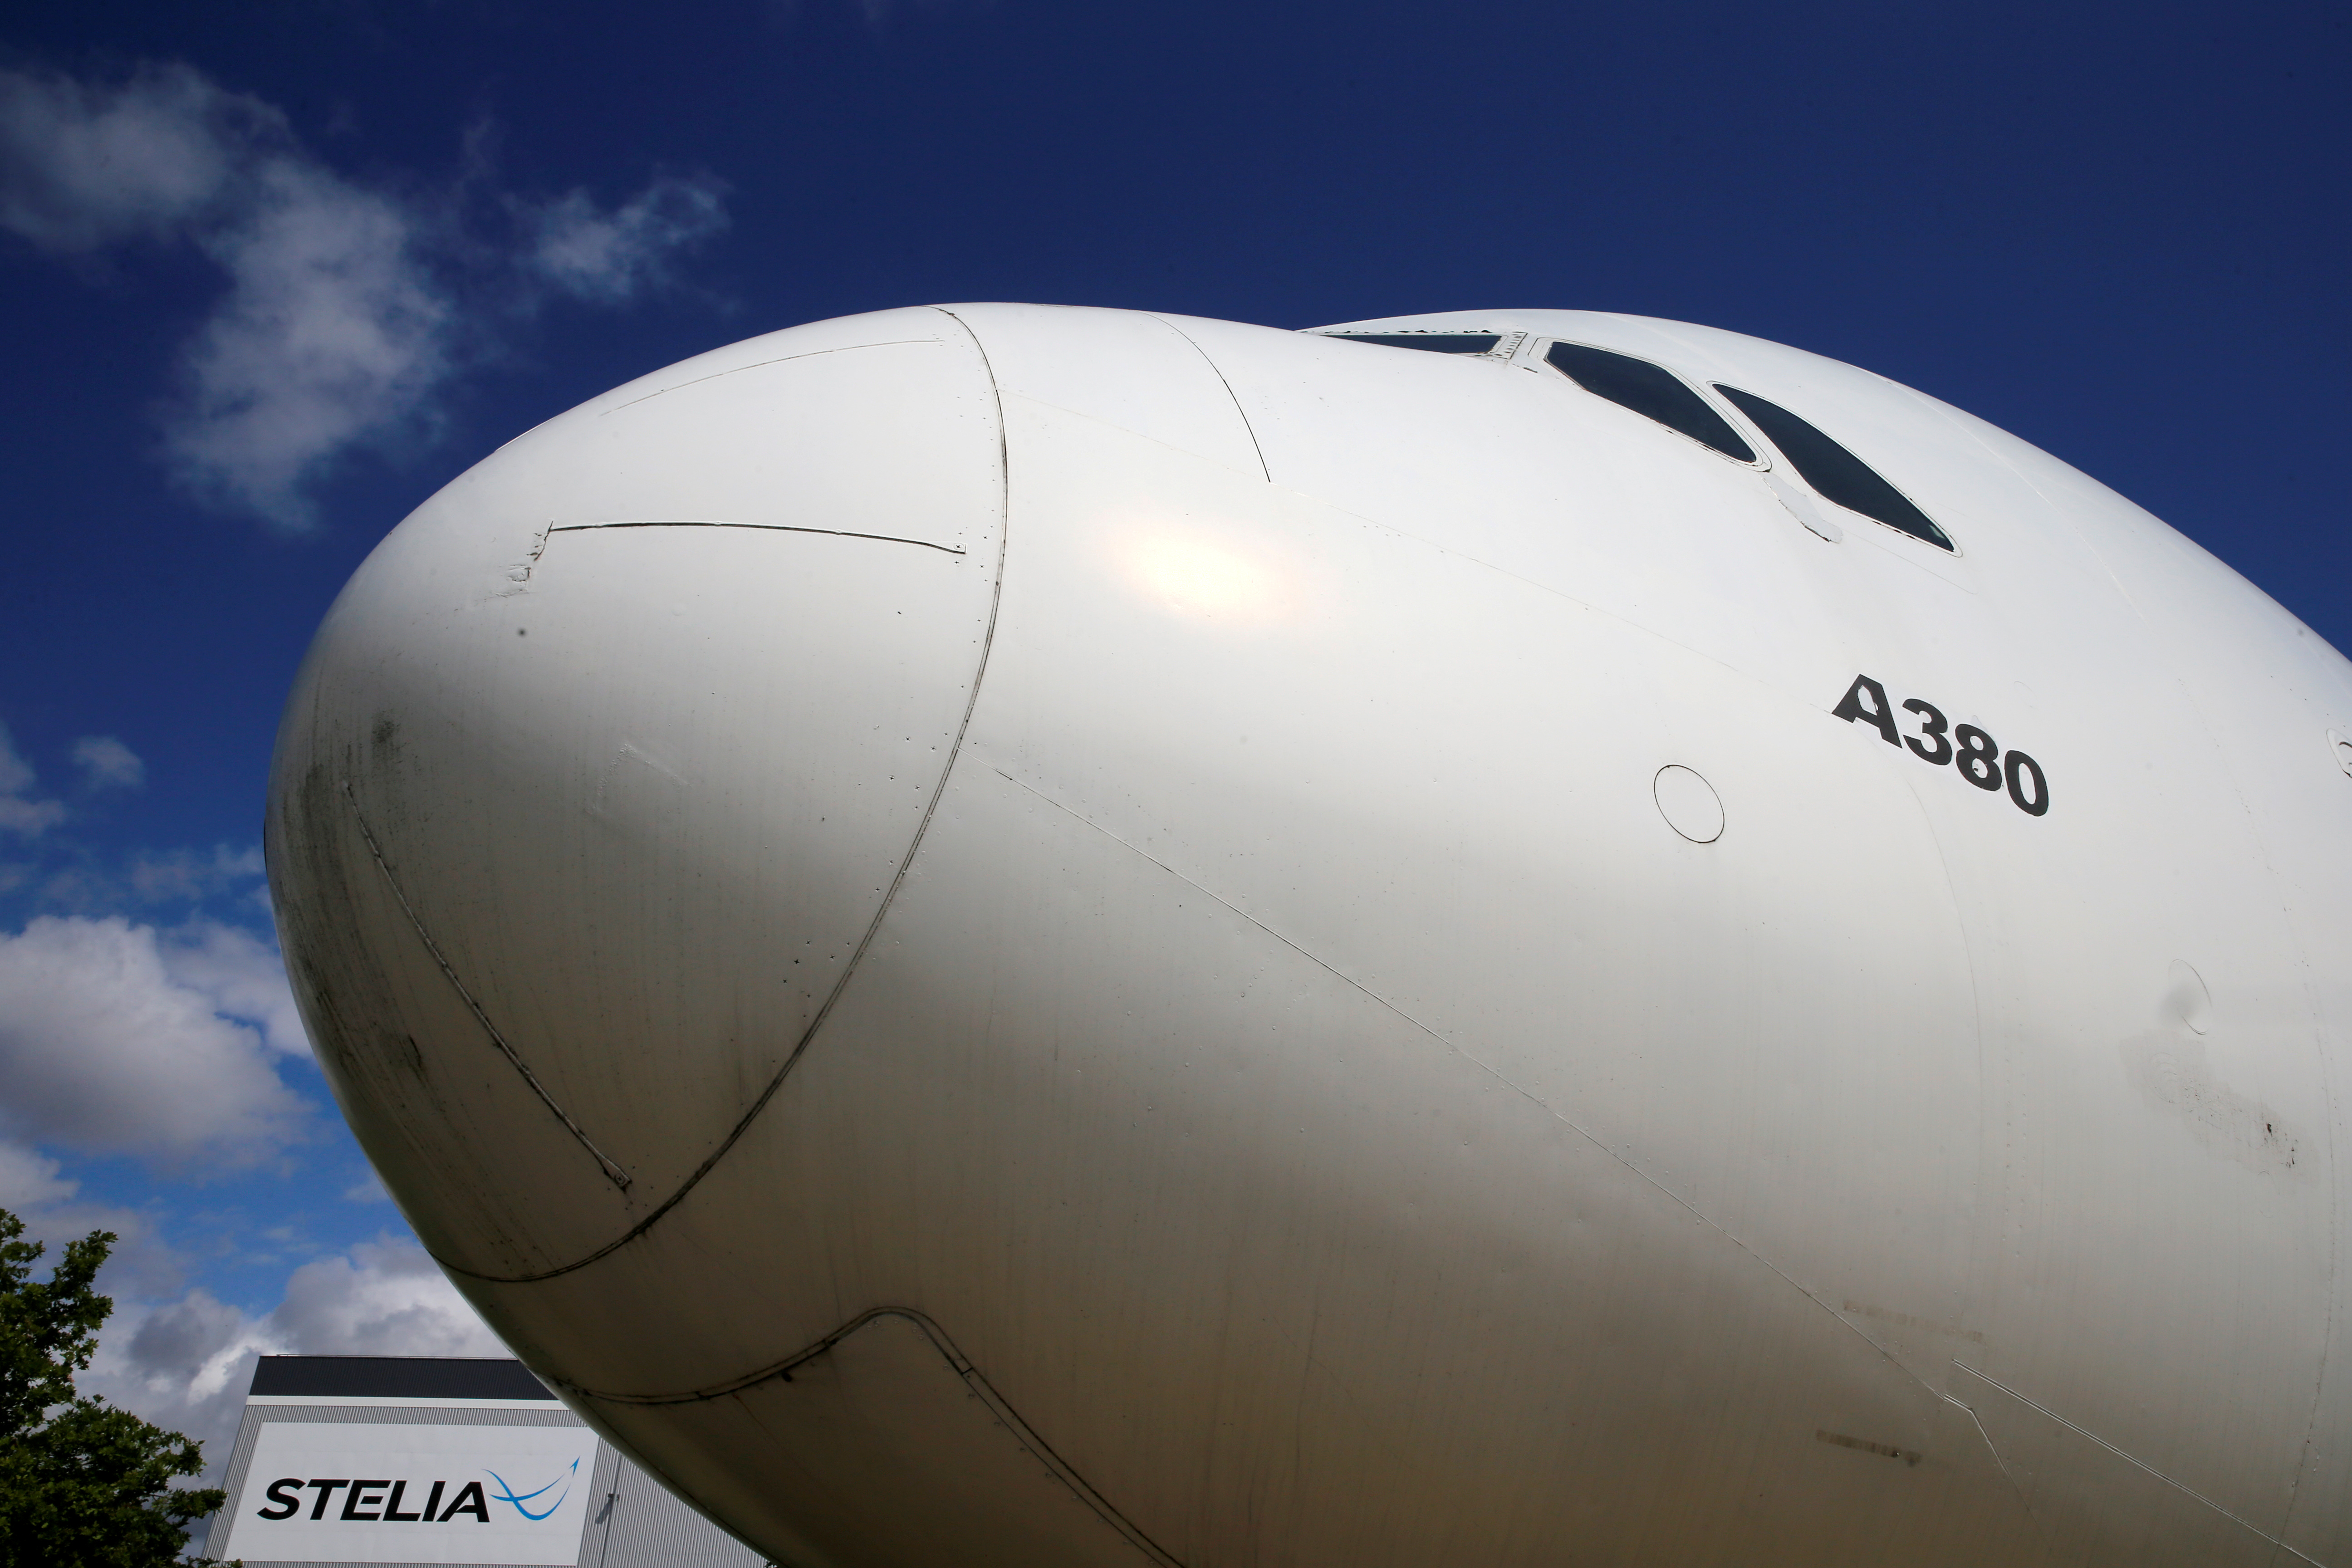 The nose of an Airbus A380 is seen outside the factory of Stelia Aerospace, a subsidiary of Airbus, in Meaulte, France, July 2, 2020. REUTERS/Pascal Rossignol/File Photo